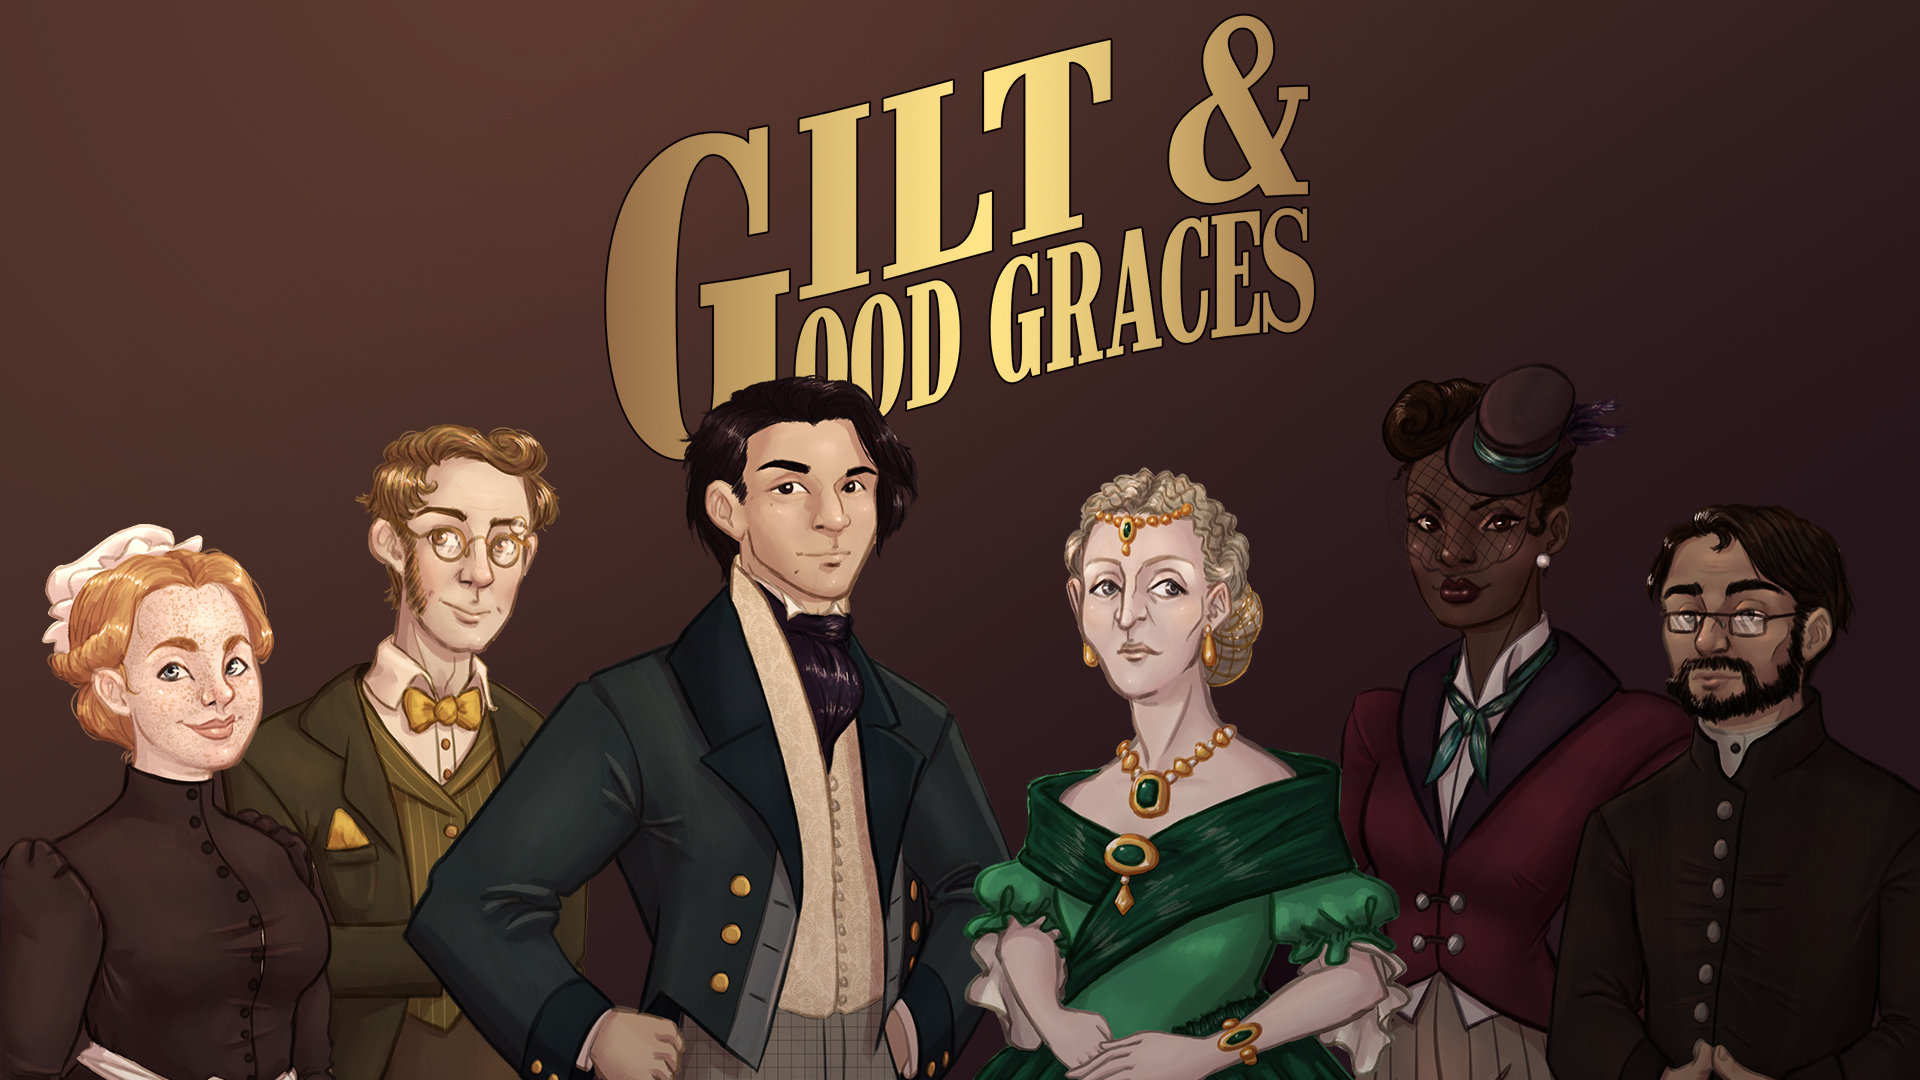 Gilt & Good Graces